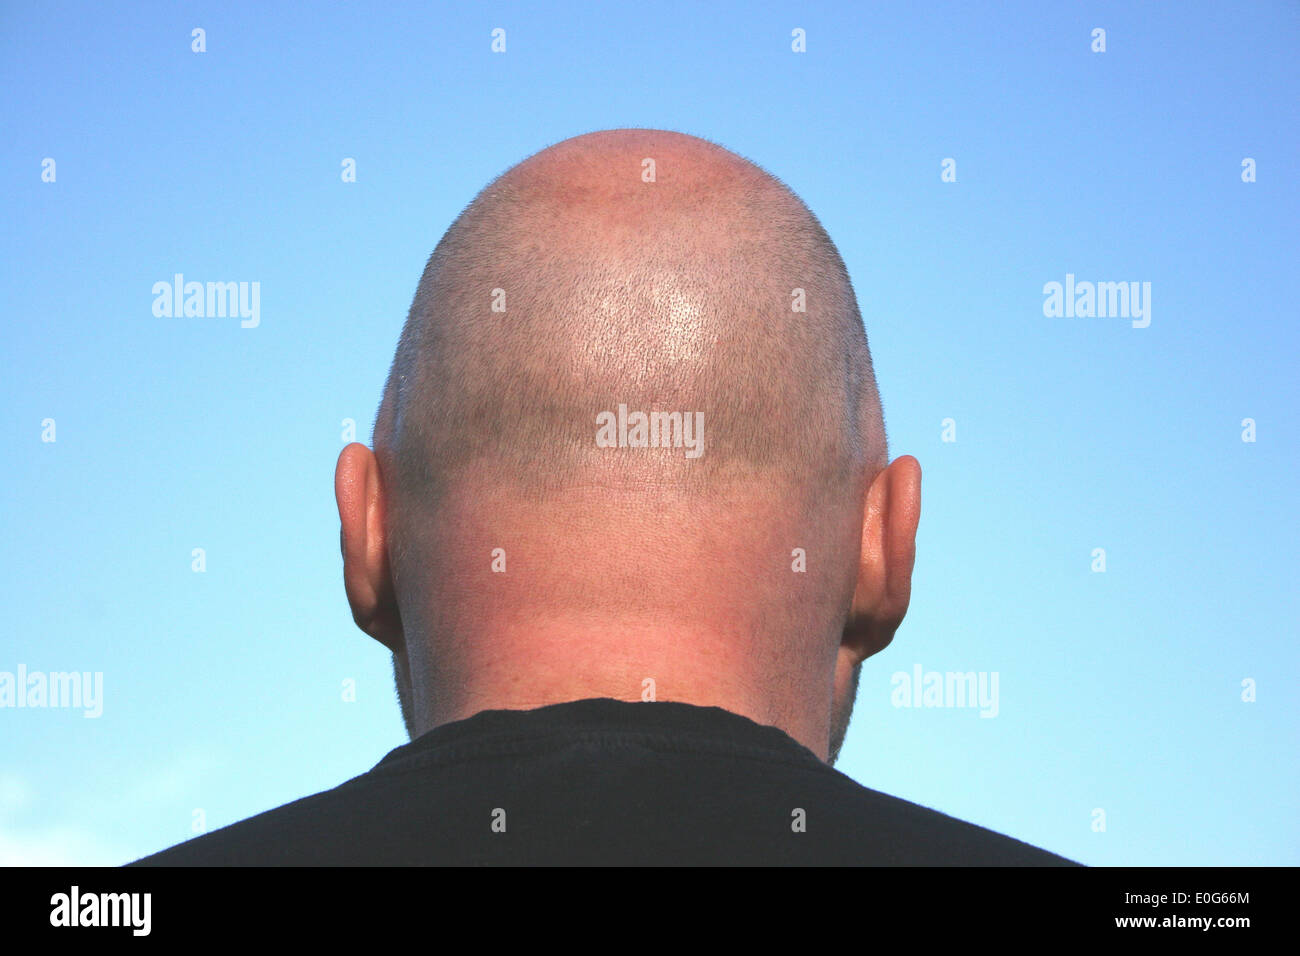 Bald head [], hairs, population, population, to, figure, figures, hairstyle, hairstyles, society, social classes, Stock Photo